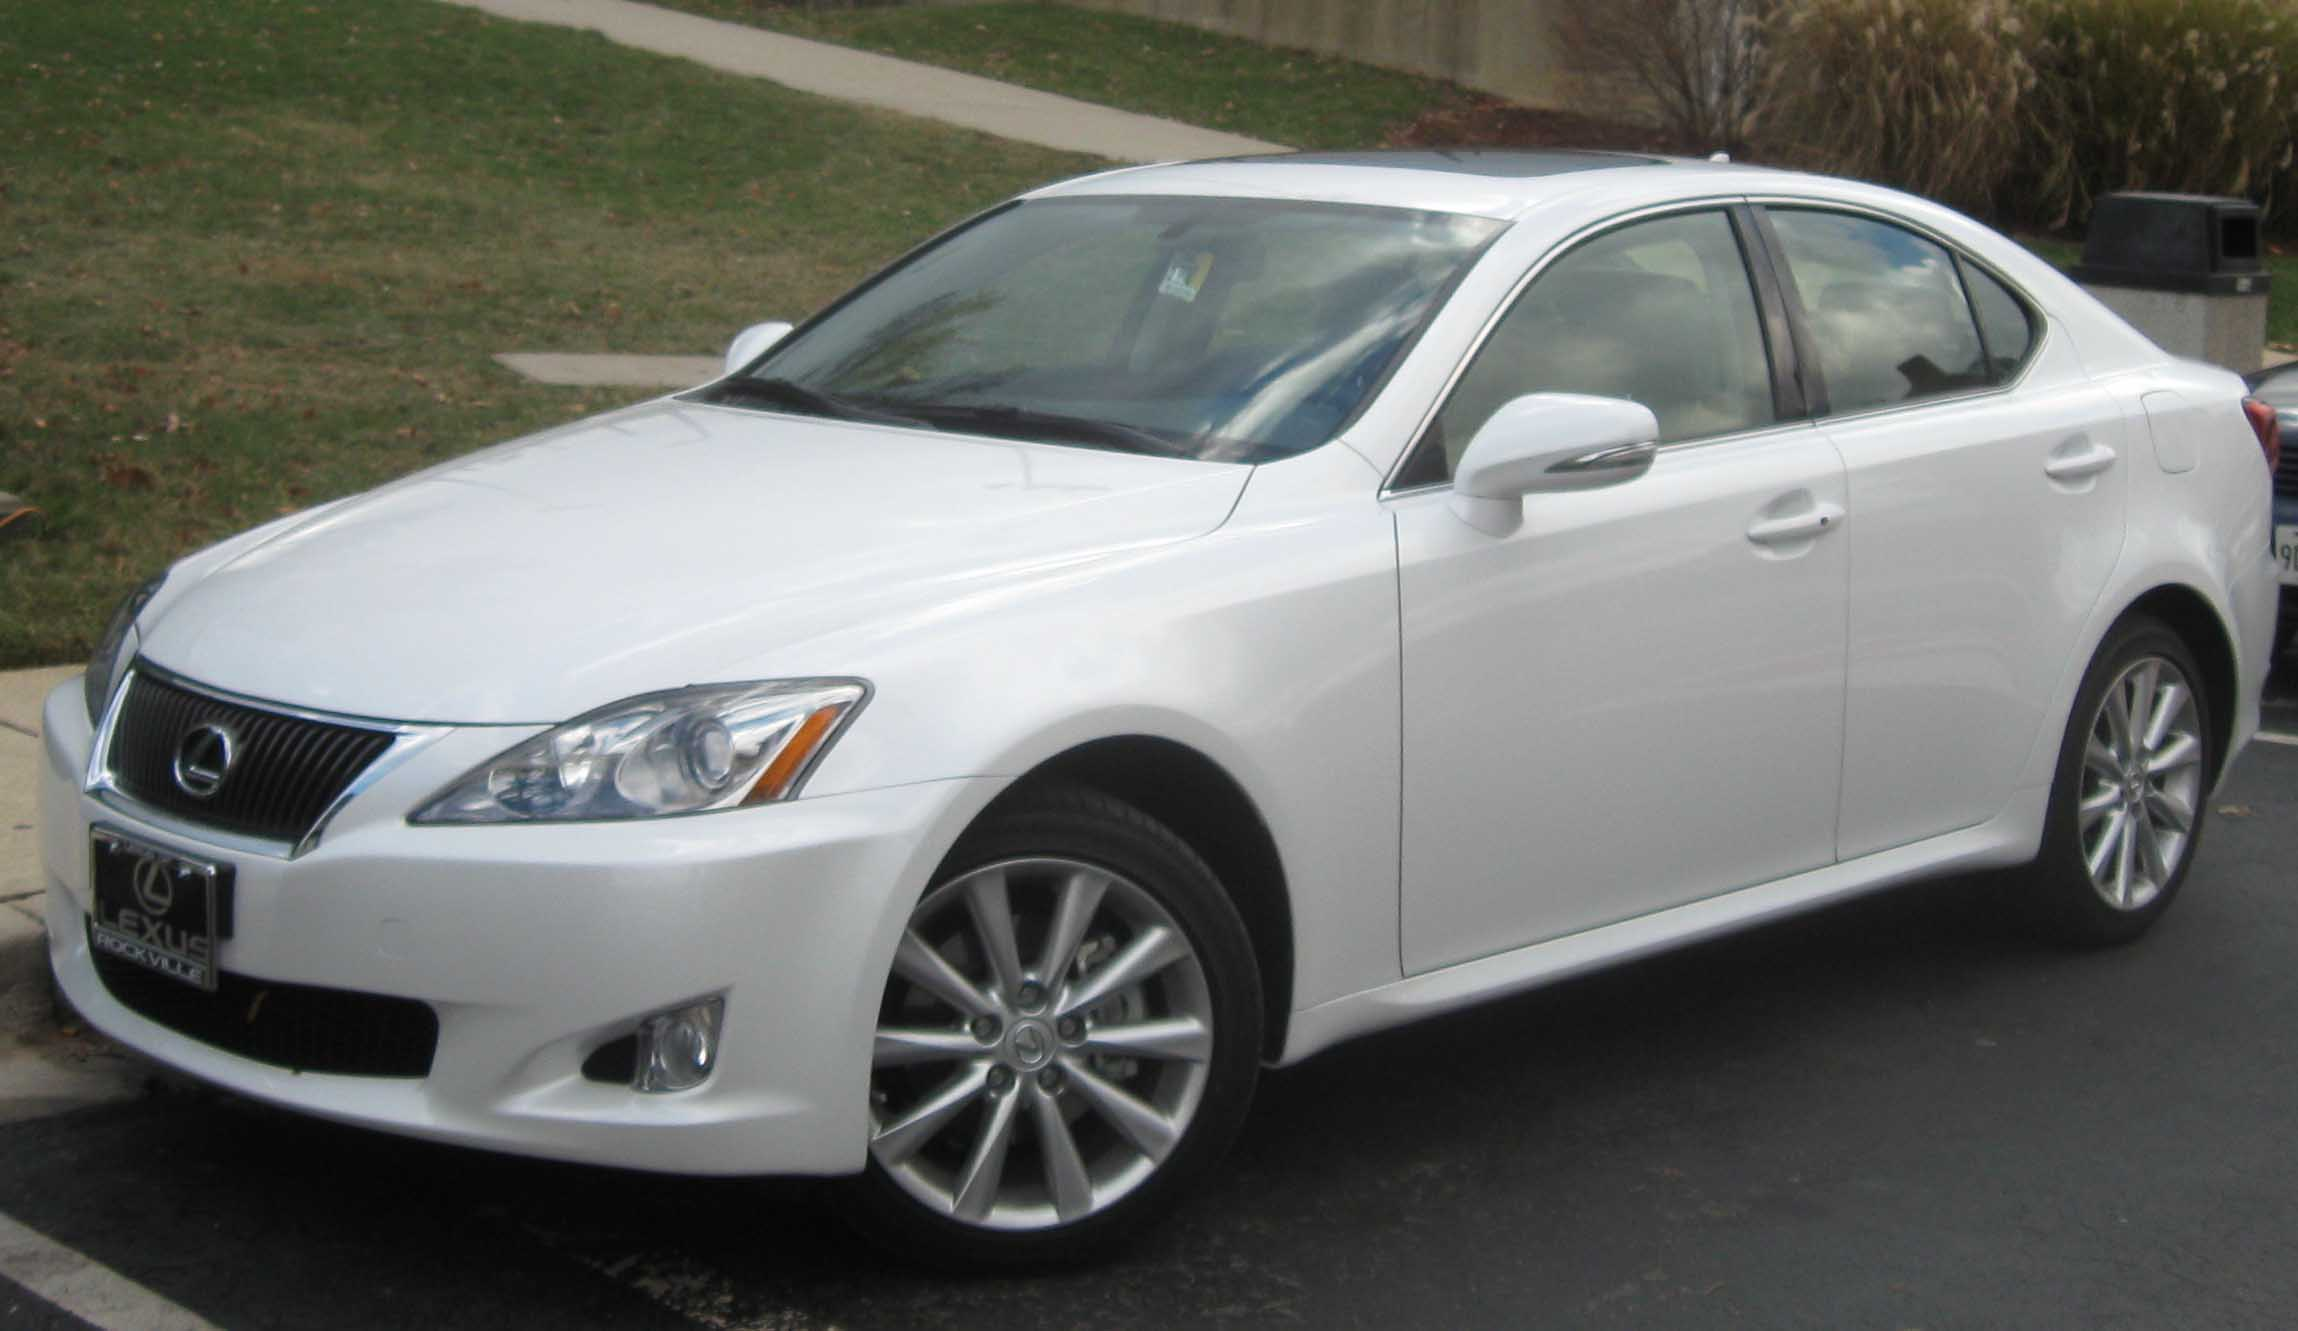 File Lexus IS250 AWD Wikimedia mons